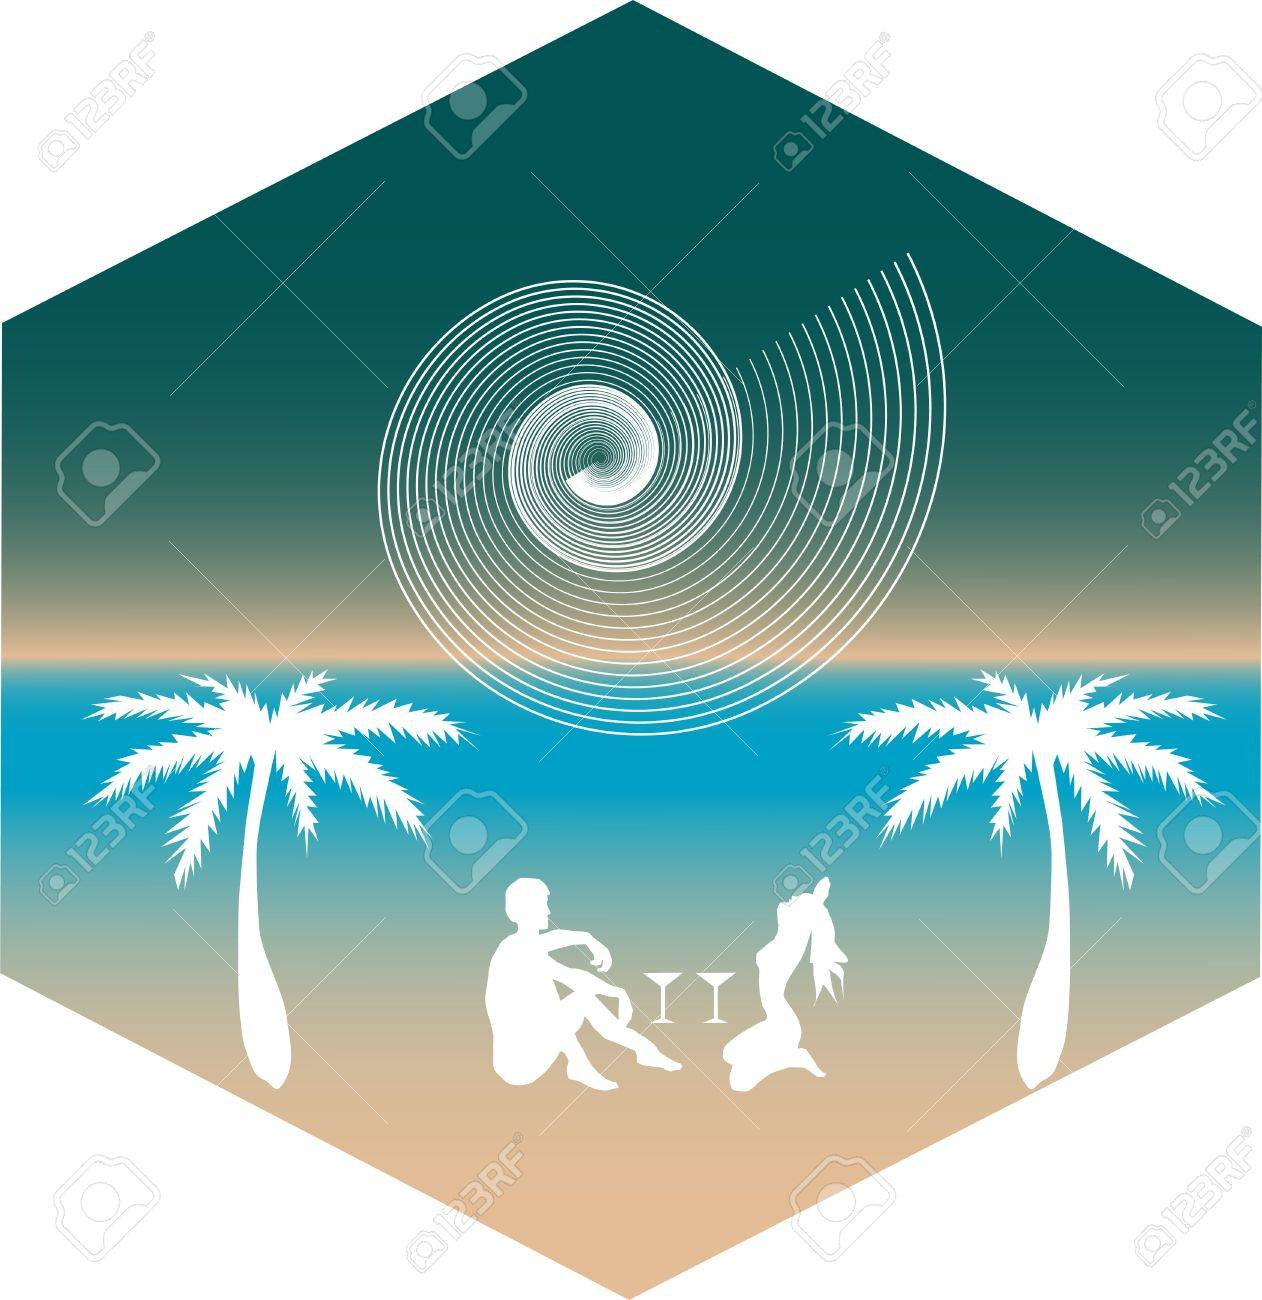 silhouette of a man and a woman on the beach under palm trees on the background of the shell Stock Vector - 14459041